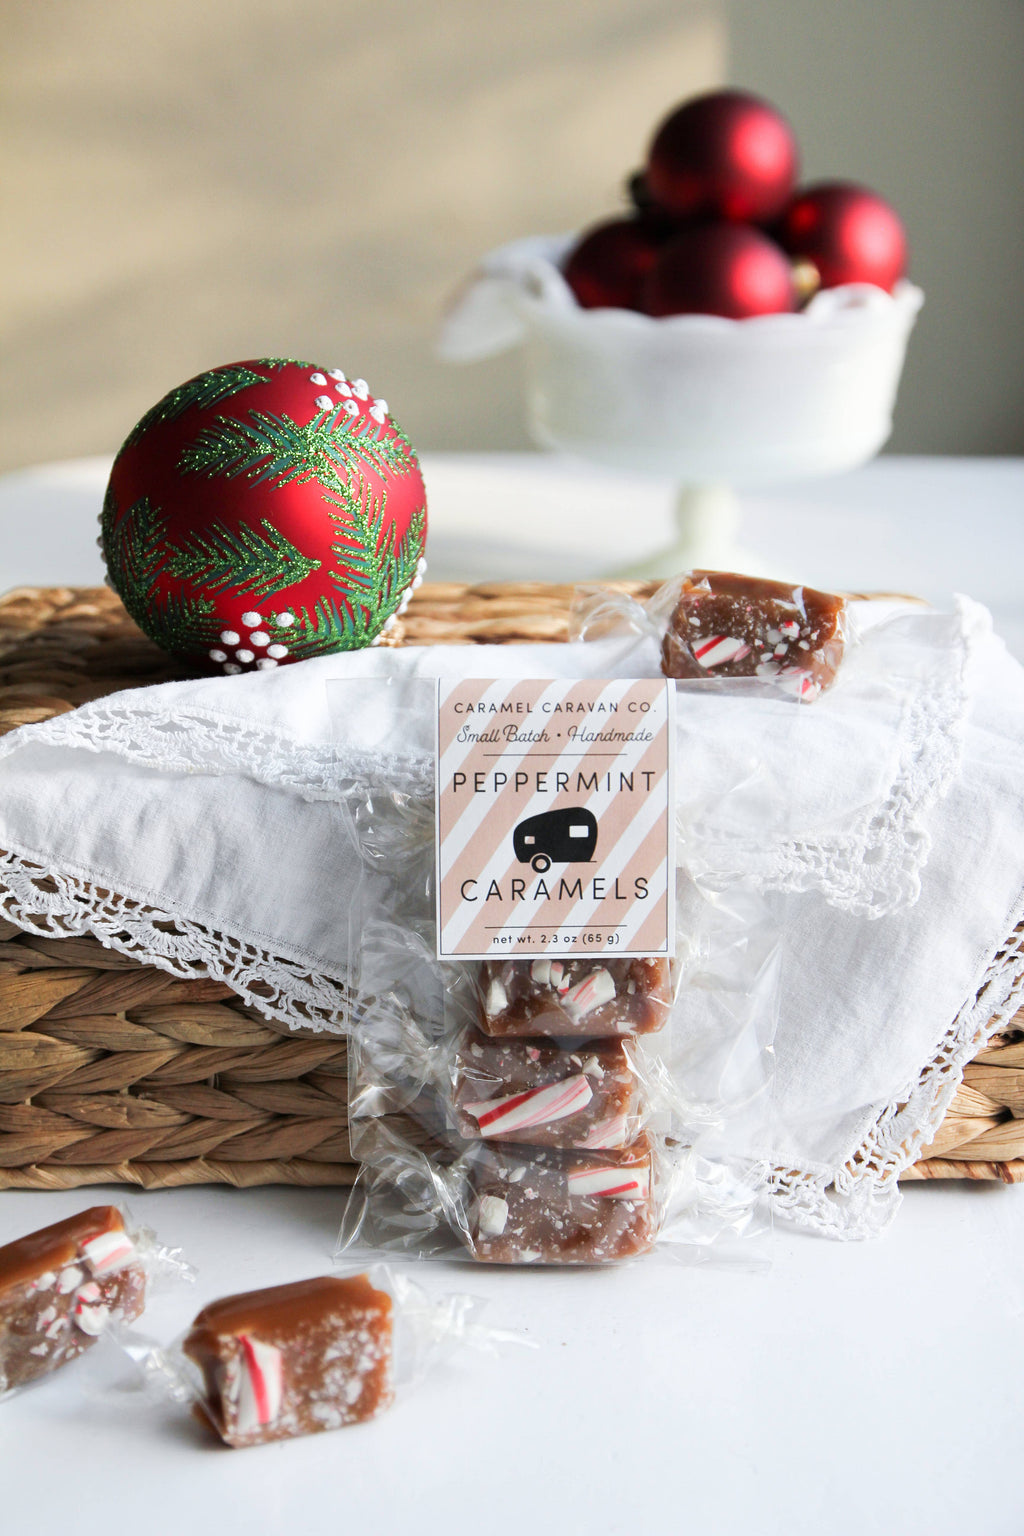 Peppermint Caramels - 4 Piece Bag